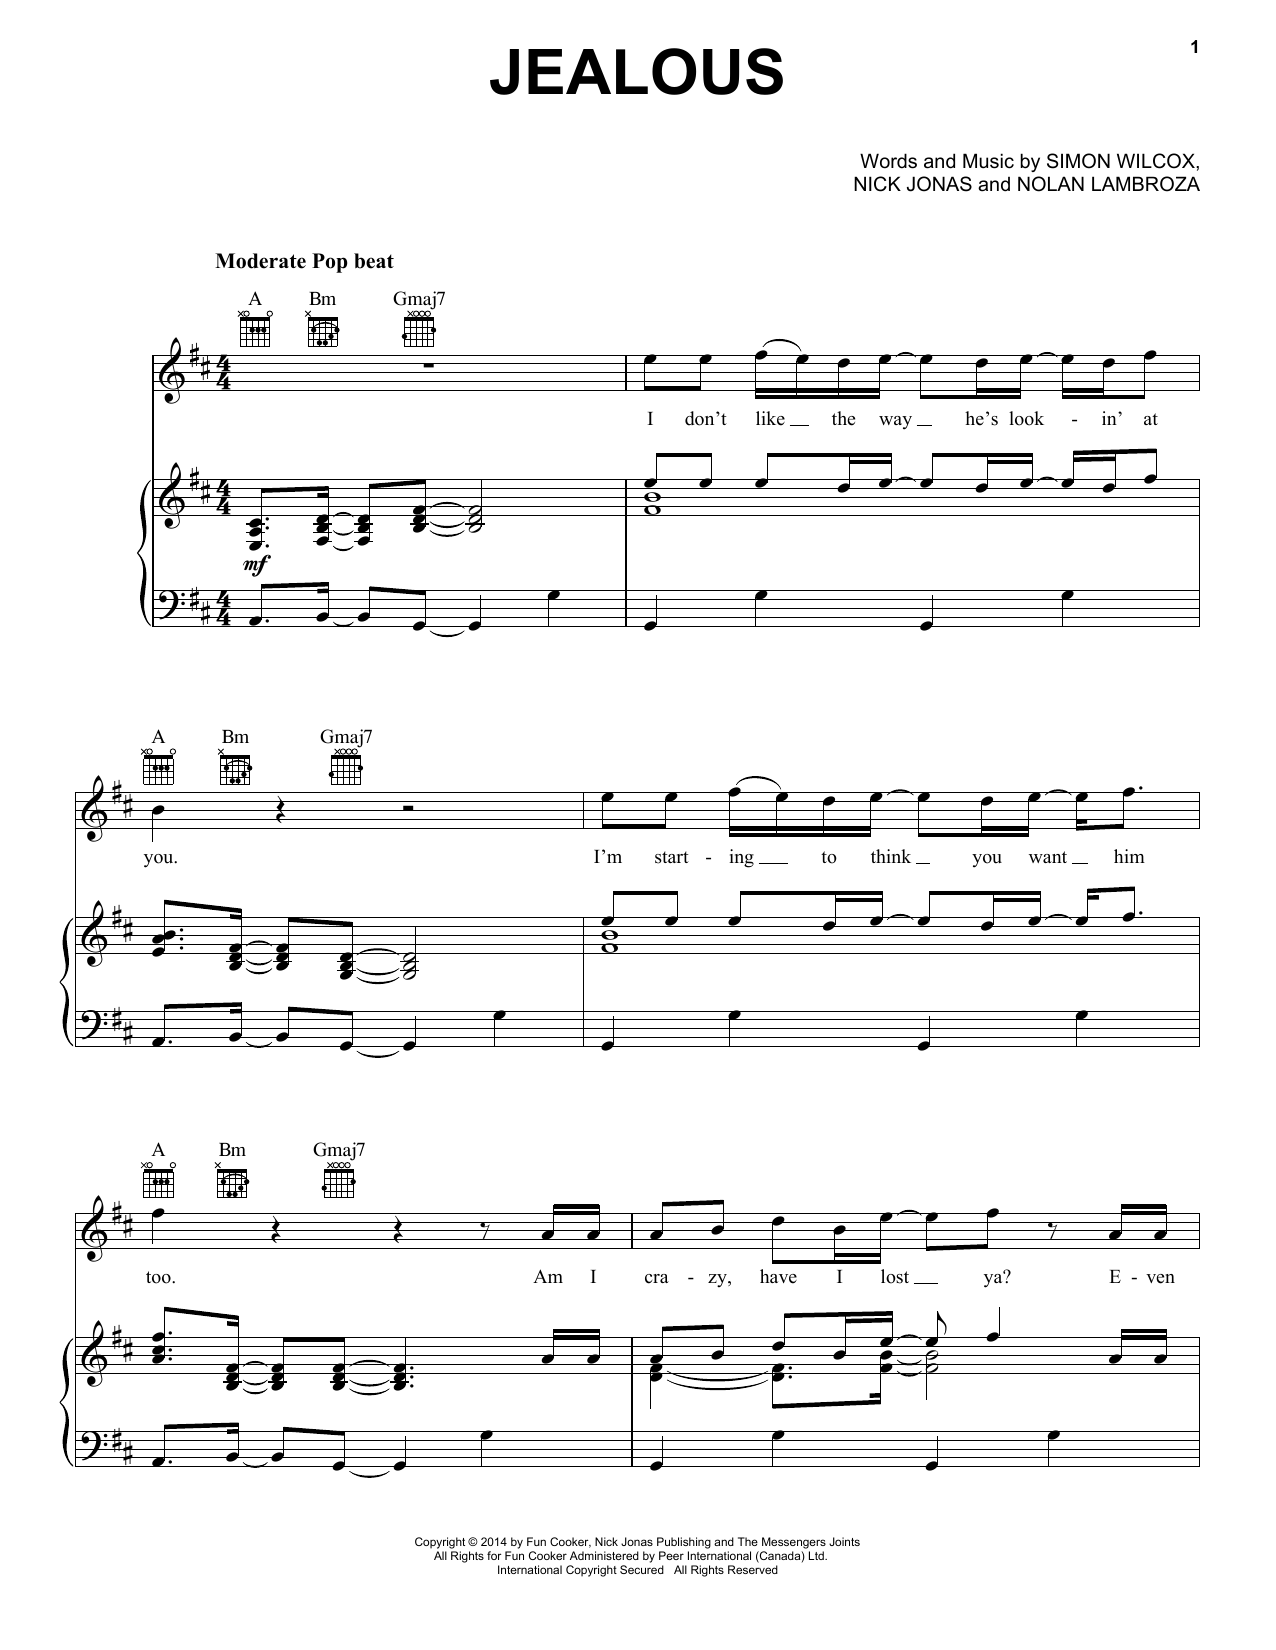 Nick Jonas Jealous Sheet Music Notes Download Pdf Pop Score Piano Vocal Guitar Right Hand Melody